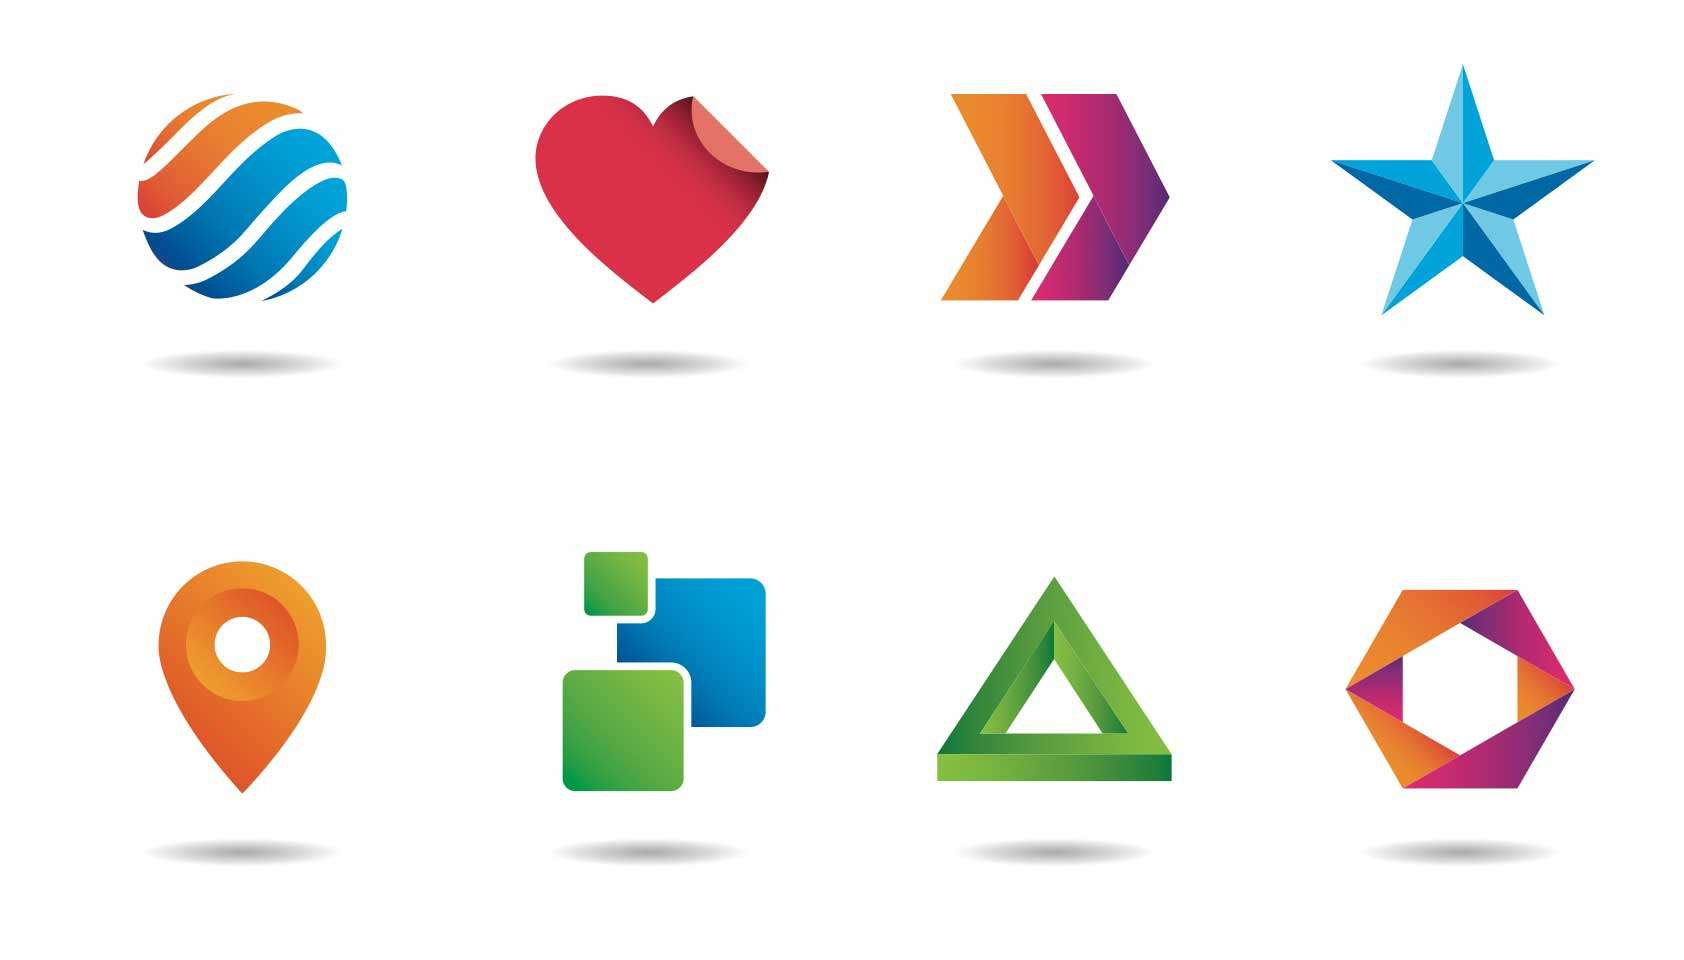 Logo Design Ideas For Graphic Designers A professional logo can